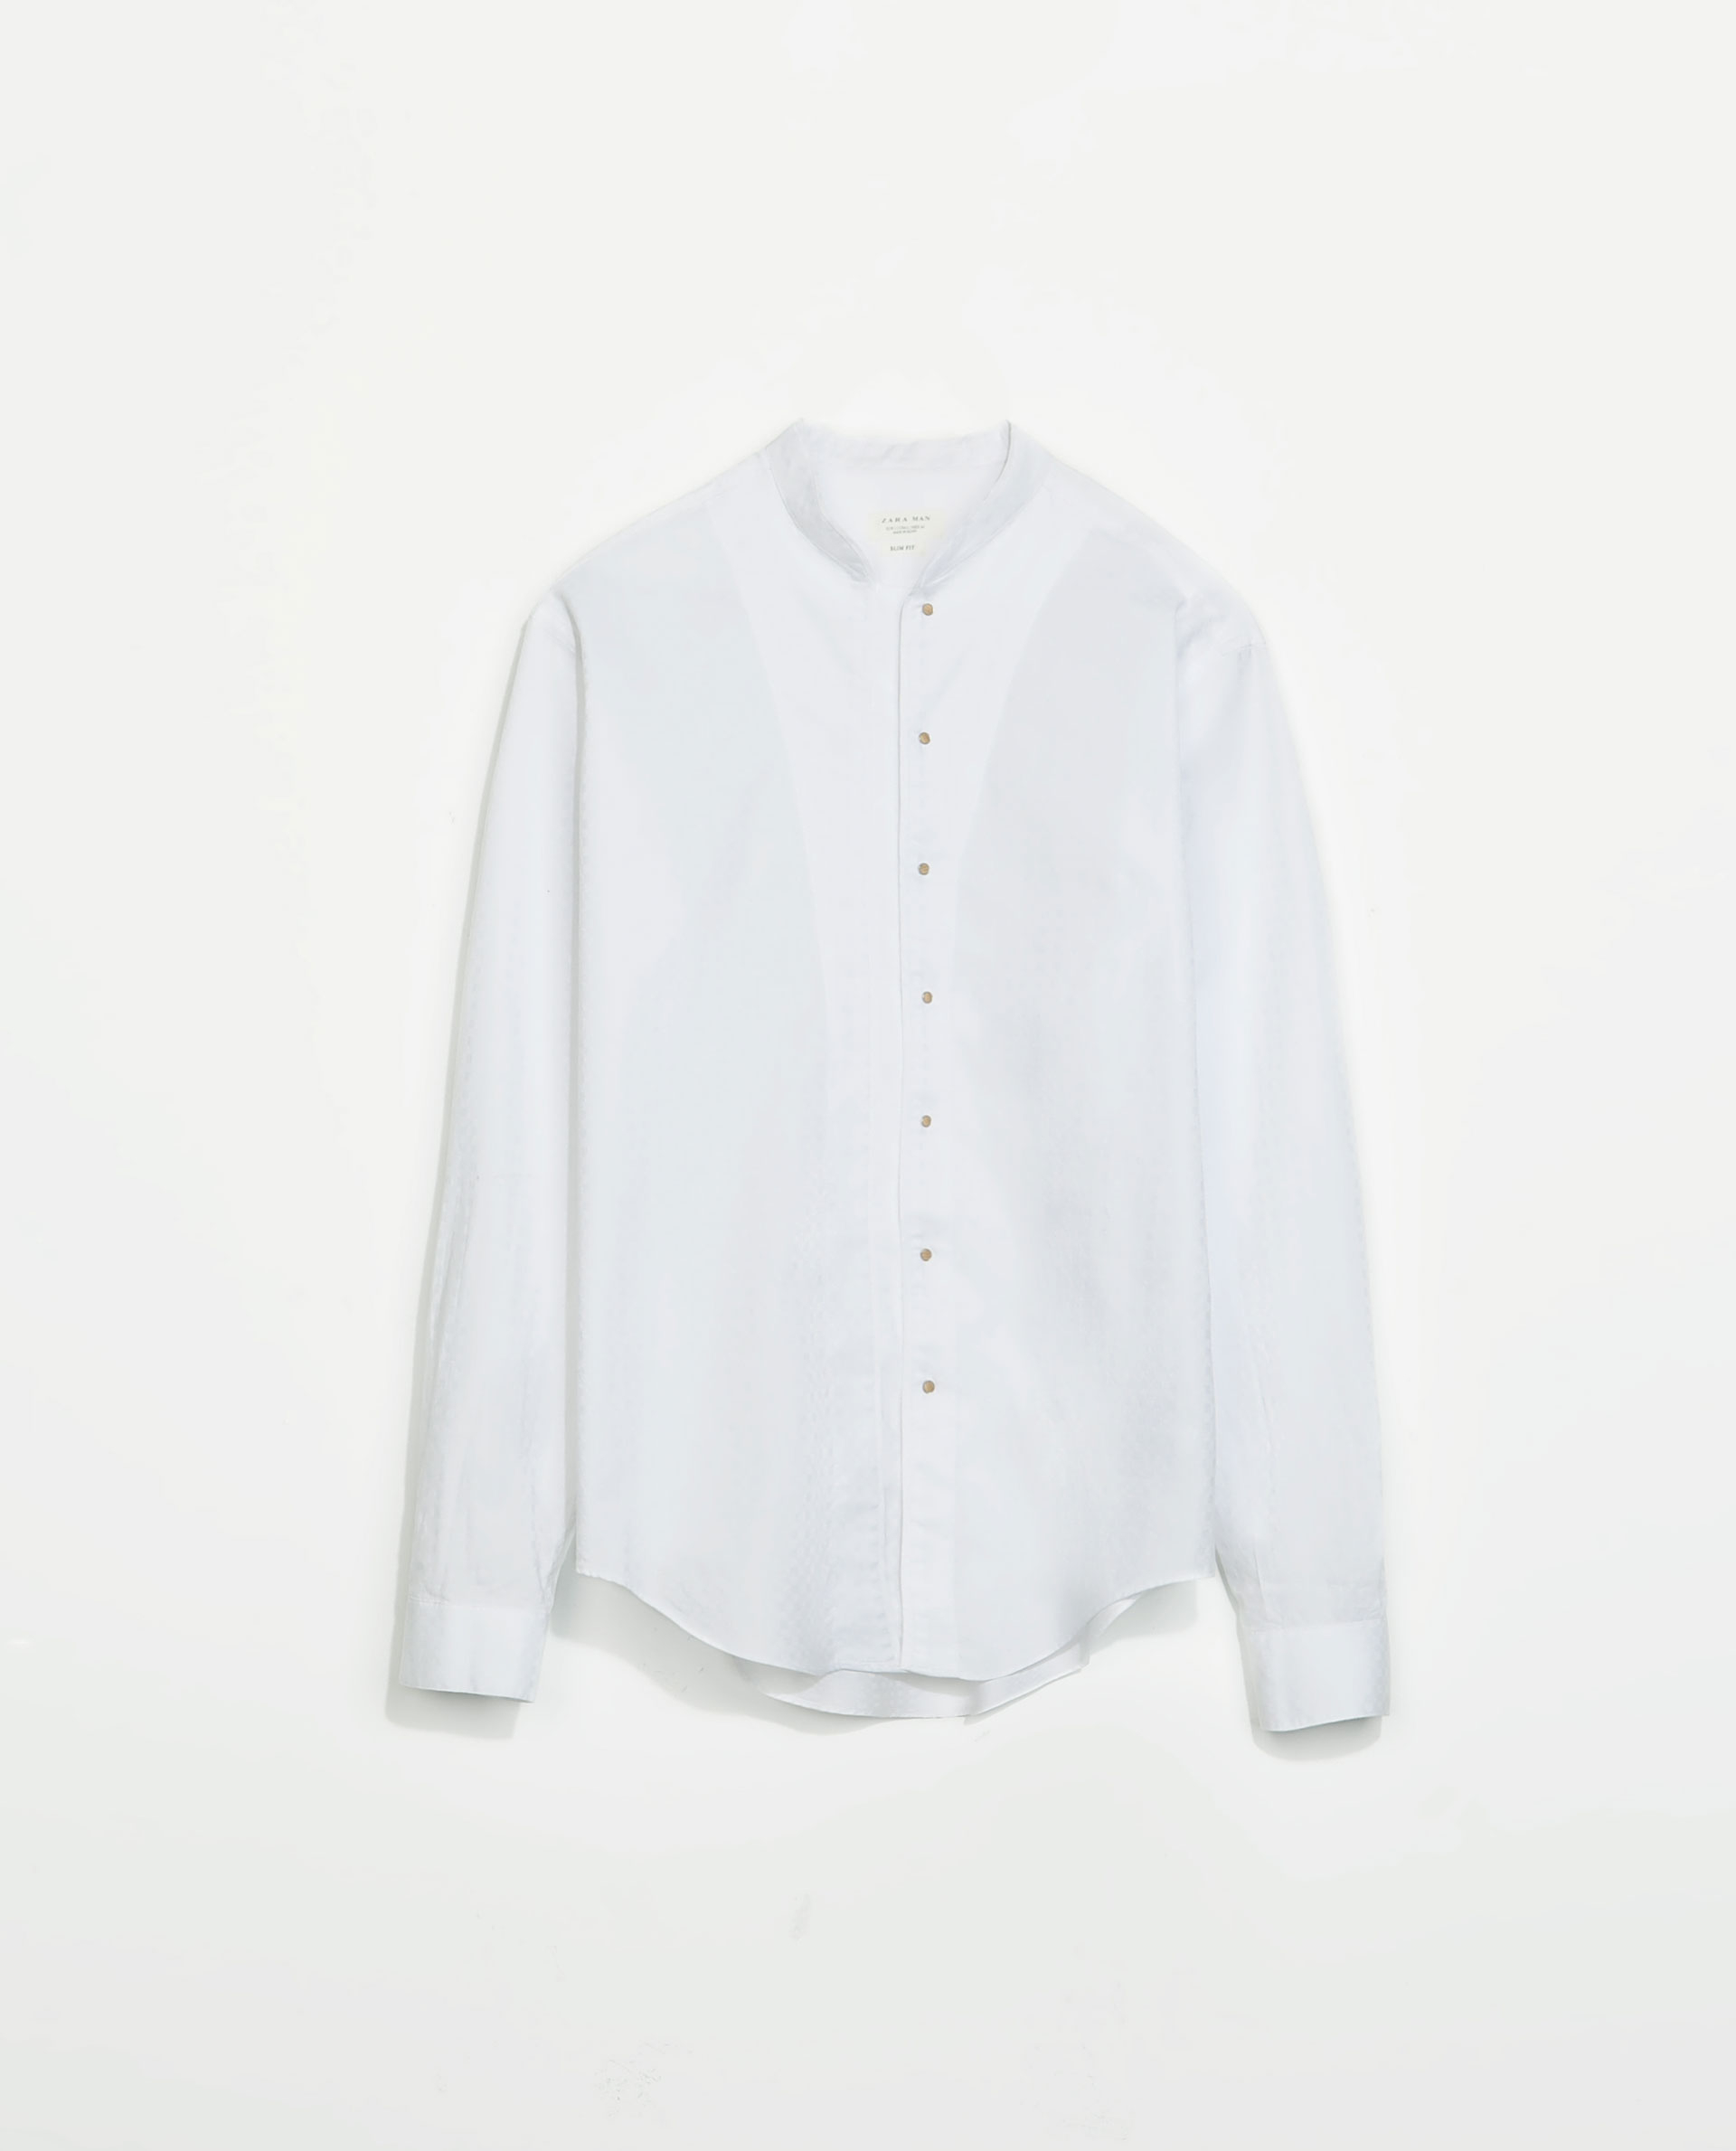 Zara structured shirt with mao collar and snap buttons in for Mens shirts with snaps instead of buttons